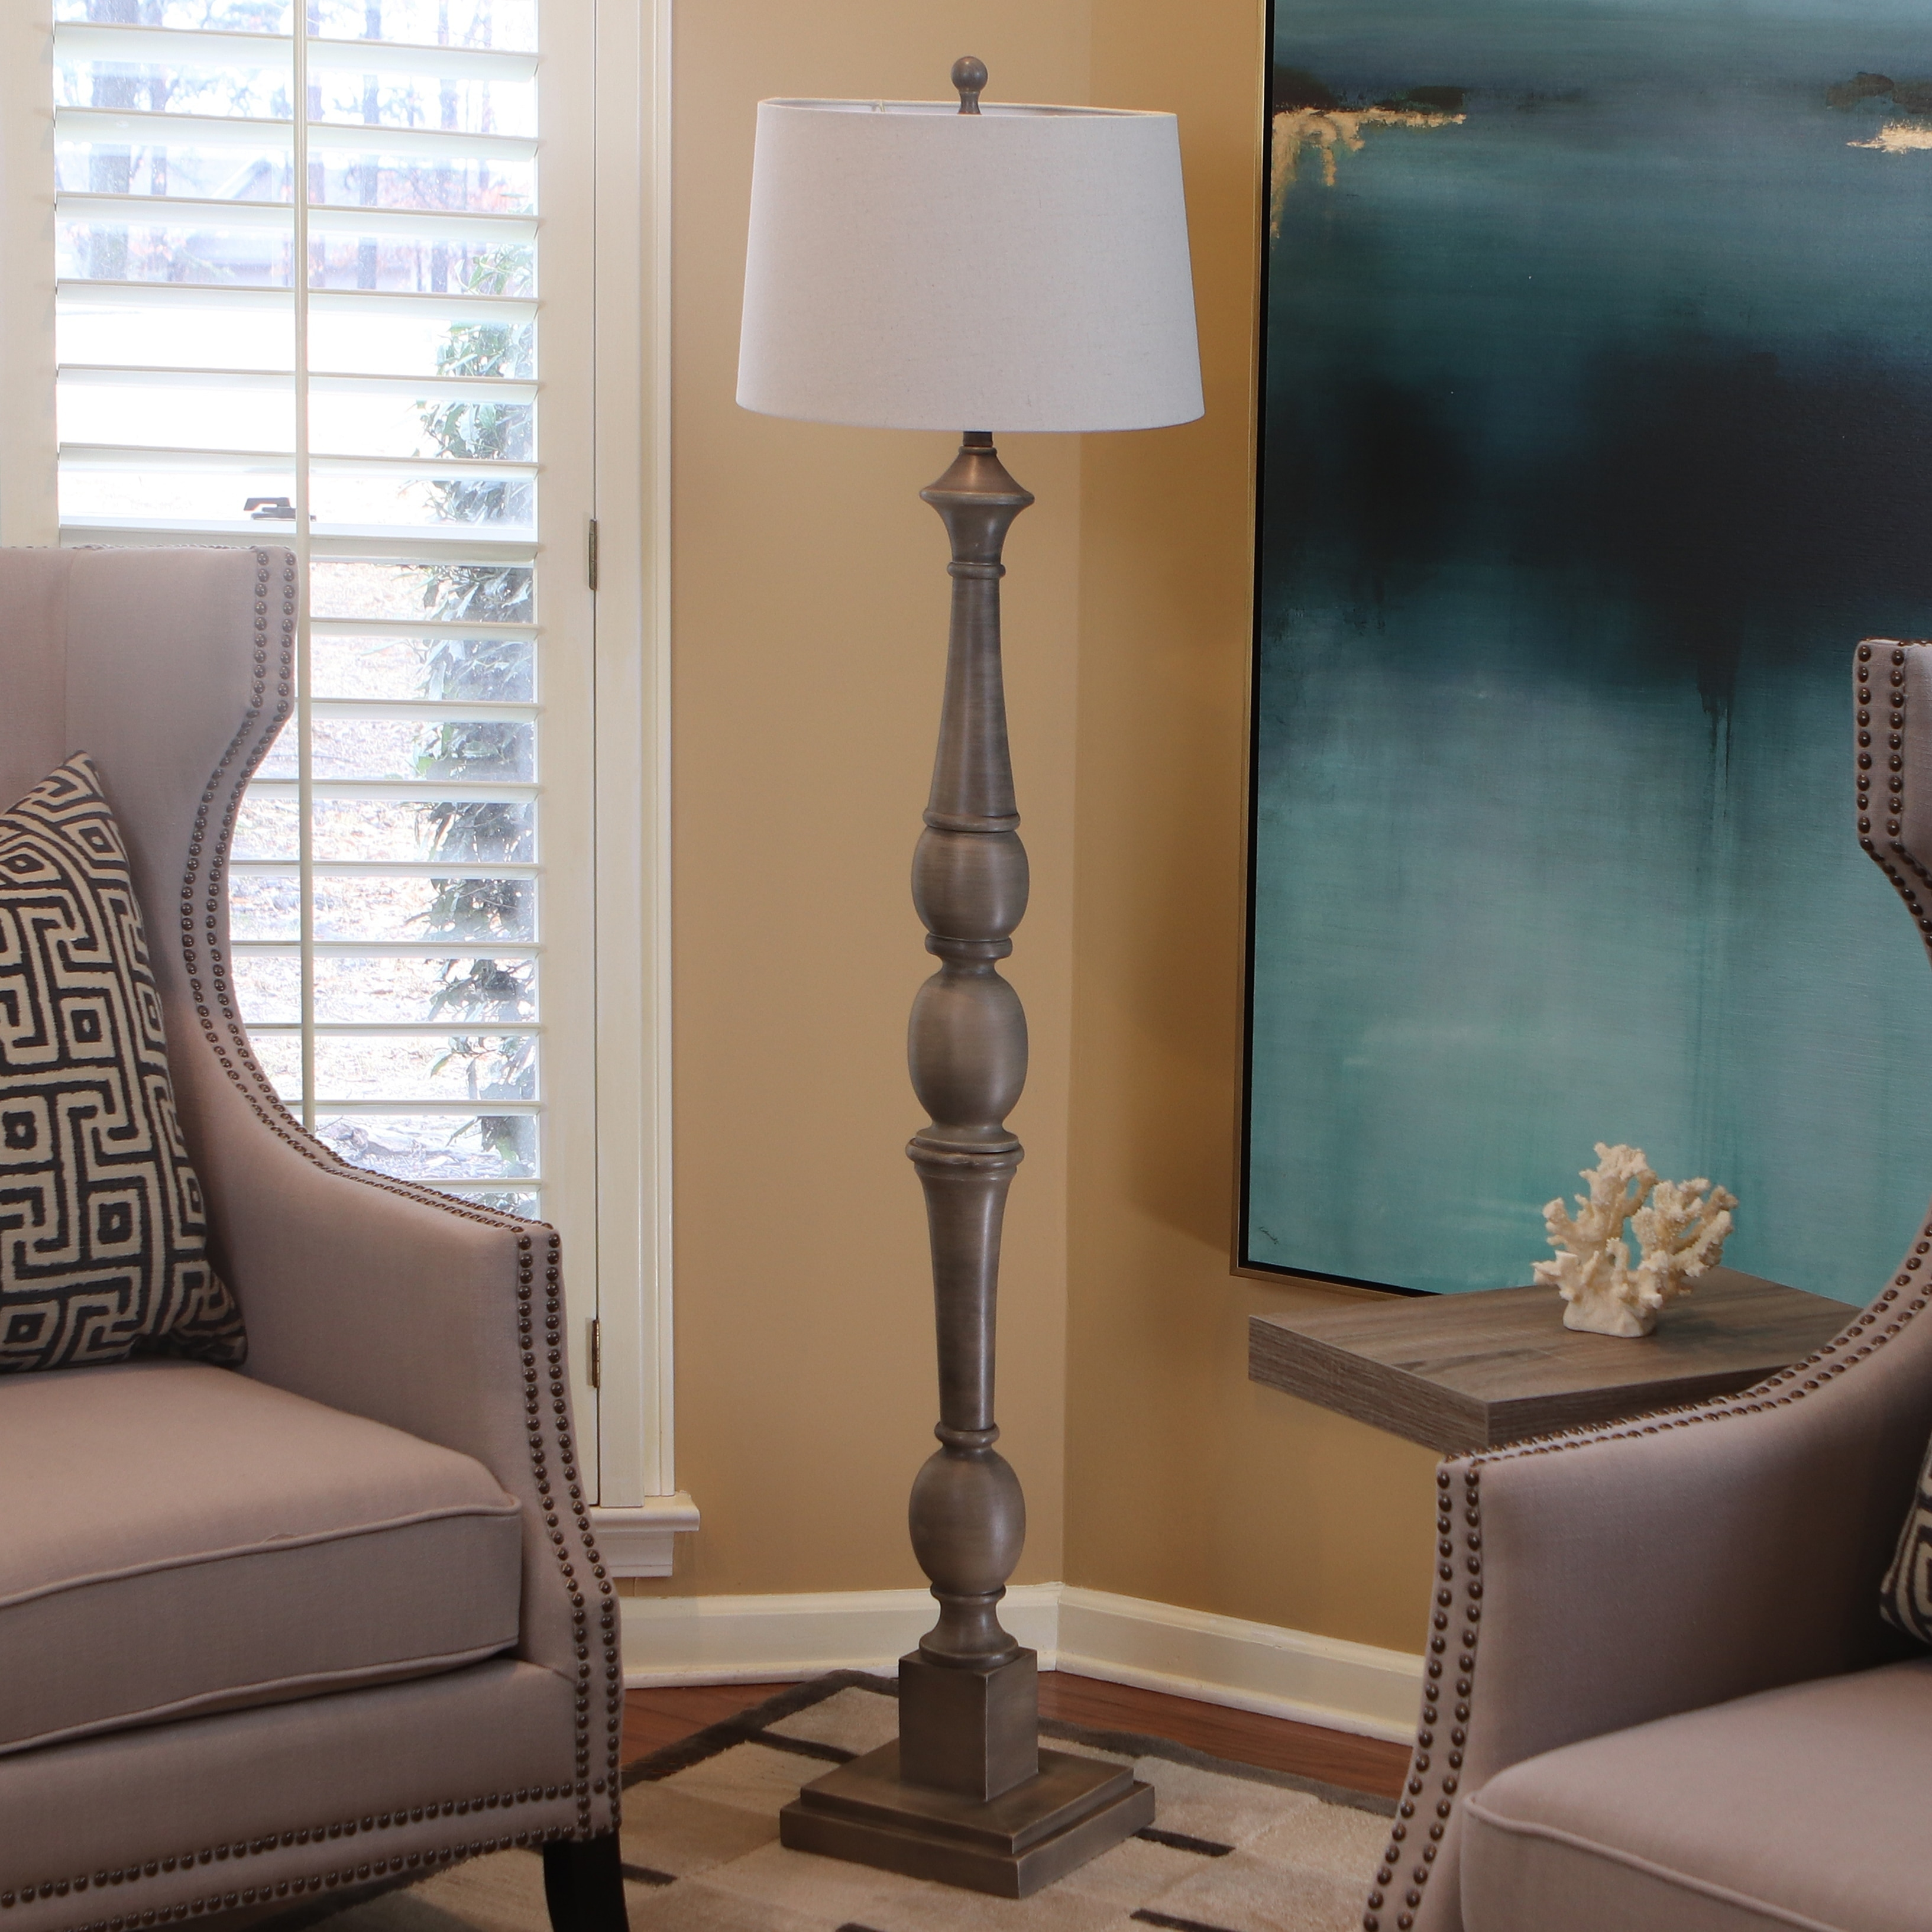 Decor Therapy Distressed Baluster Grey Floor Lamp (Warm G...